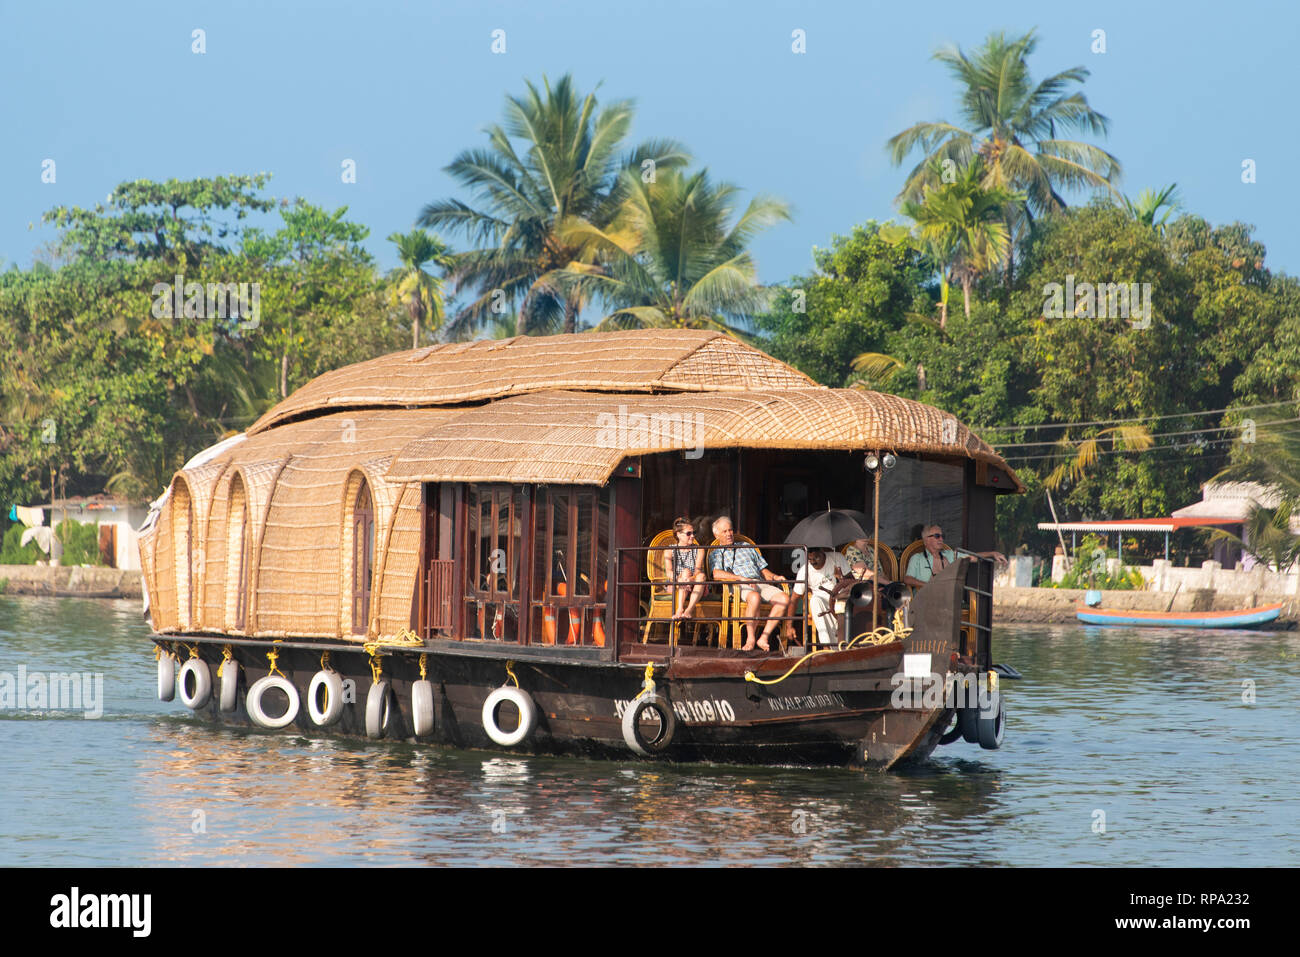 A typical example of a traditional liveaboard boat cruising floating on the Keralan backwaters on a sunny day with blue sky and palm trees. - Stock Image